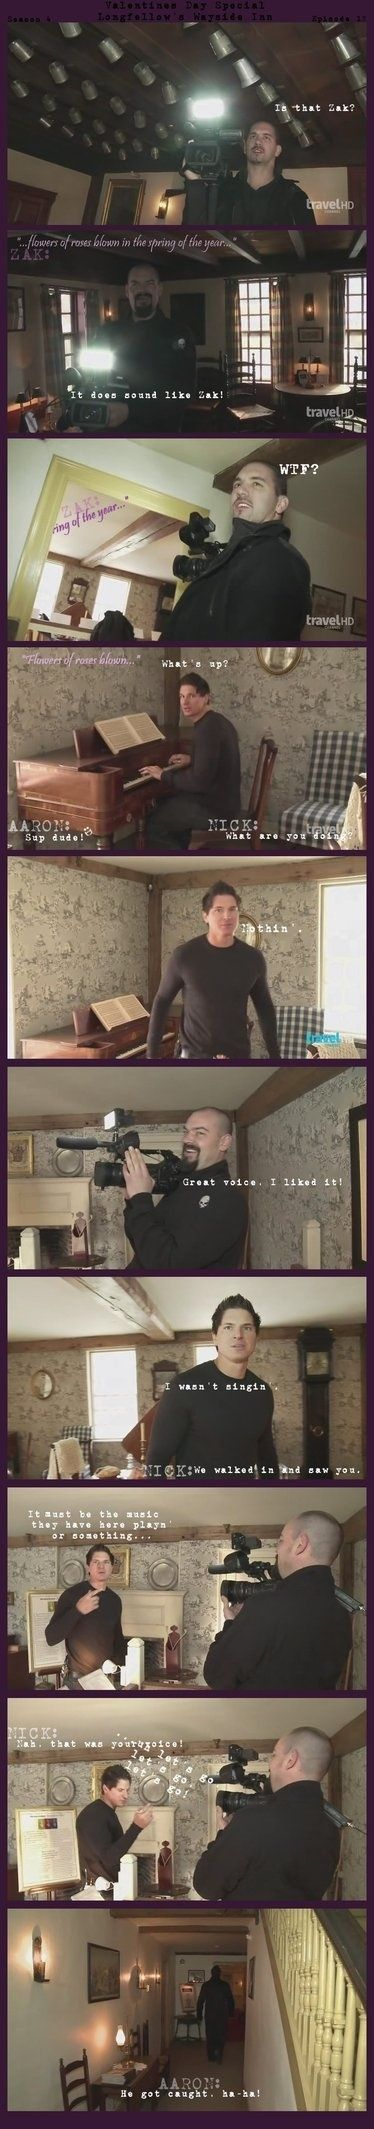 Ghost Adventures Wayside Inn, Valentine's Day. My favorite episode ❤